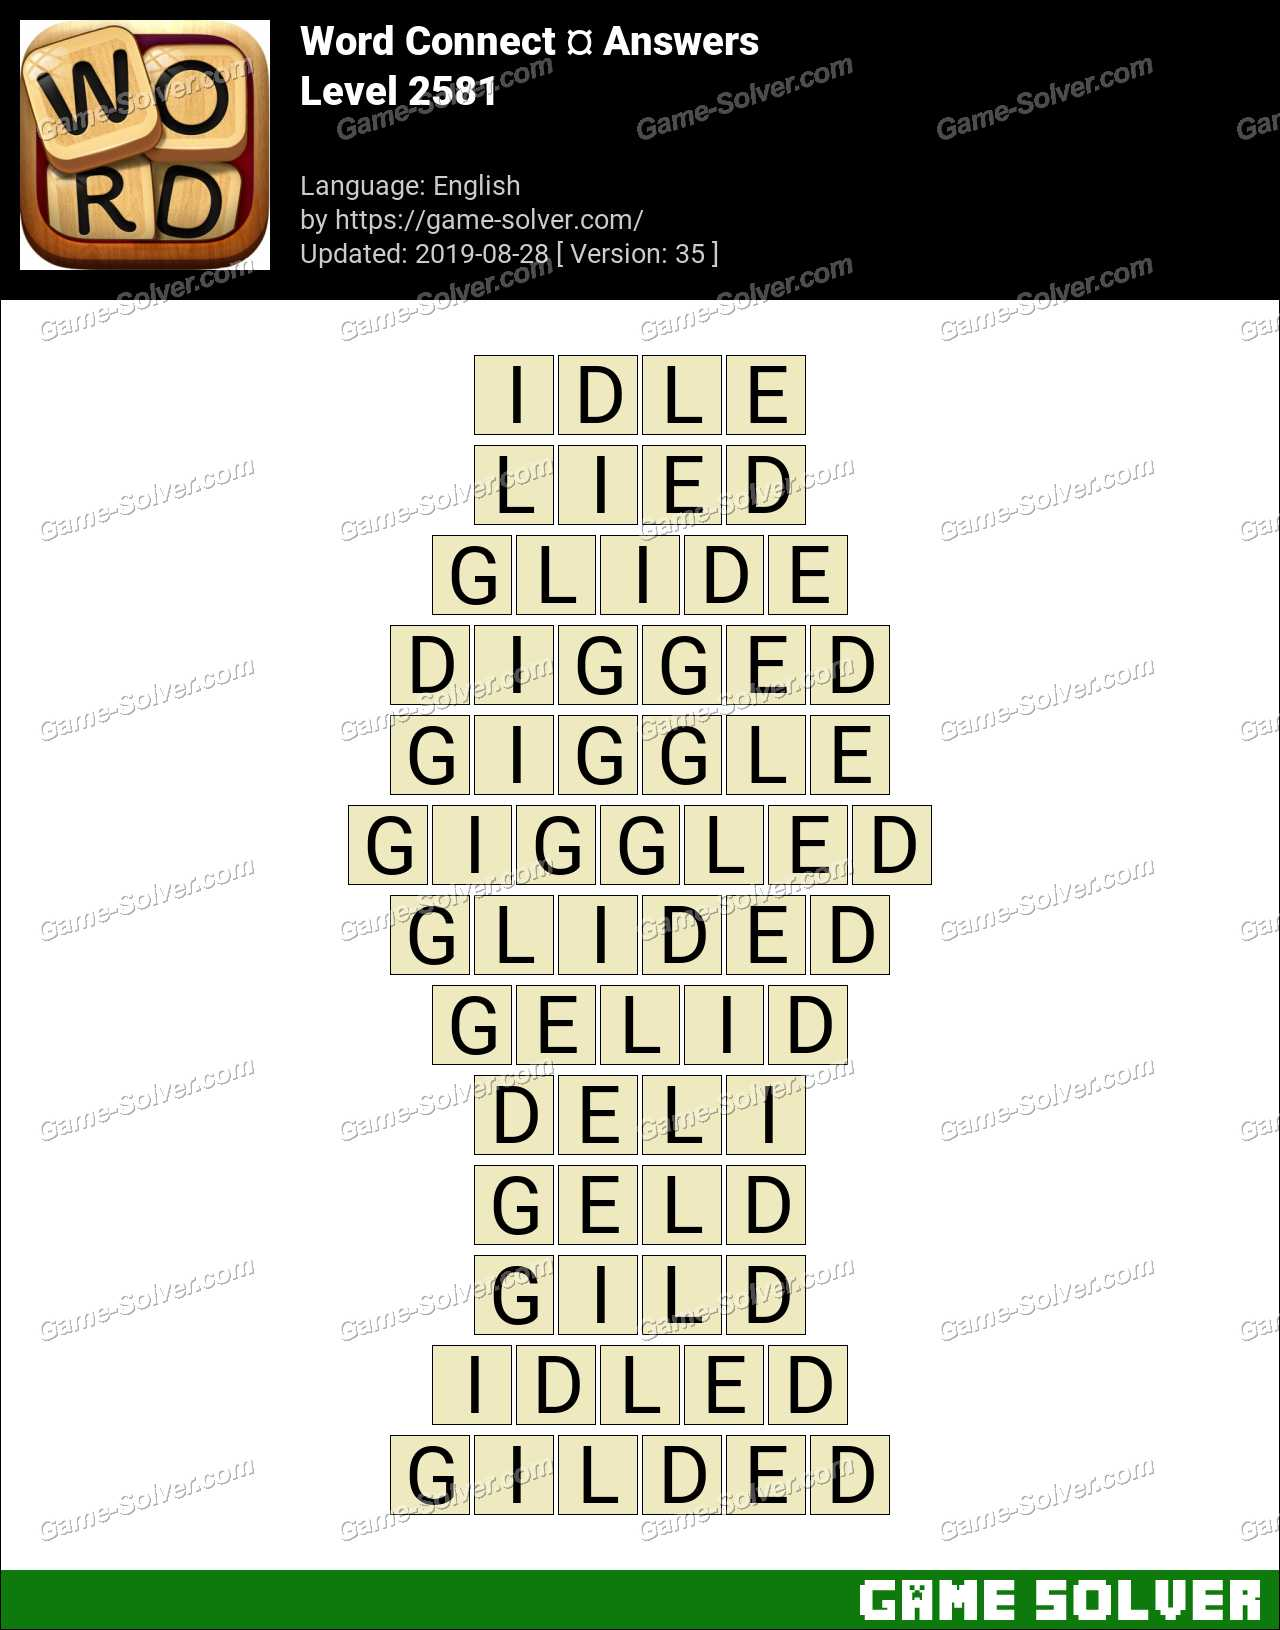 Word Connect Level 2581 Answers